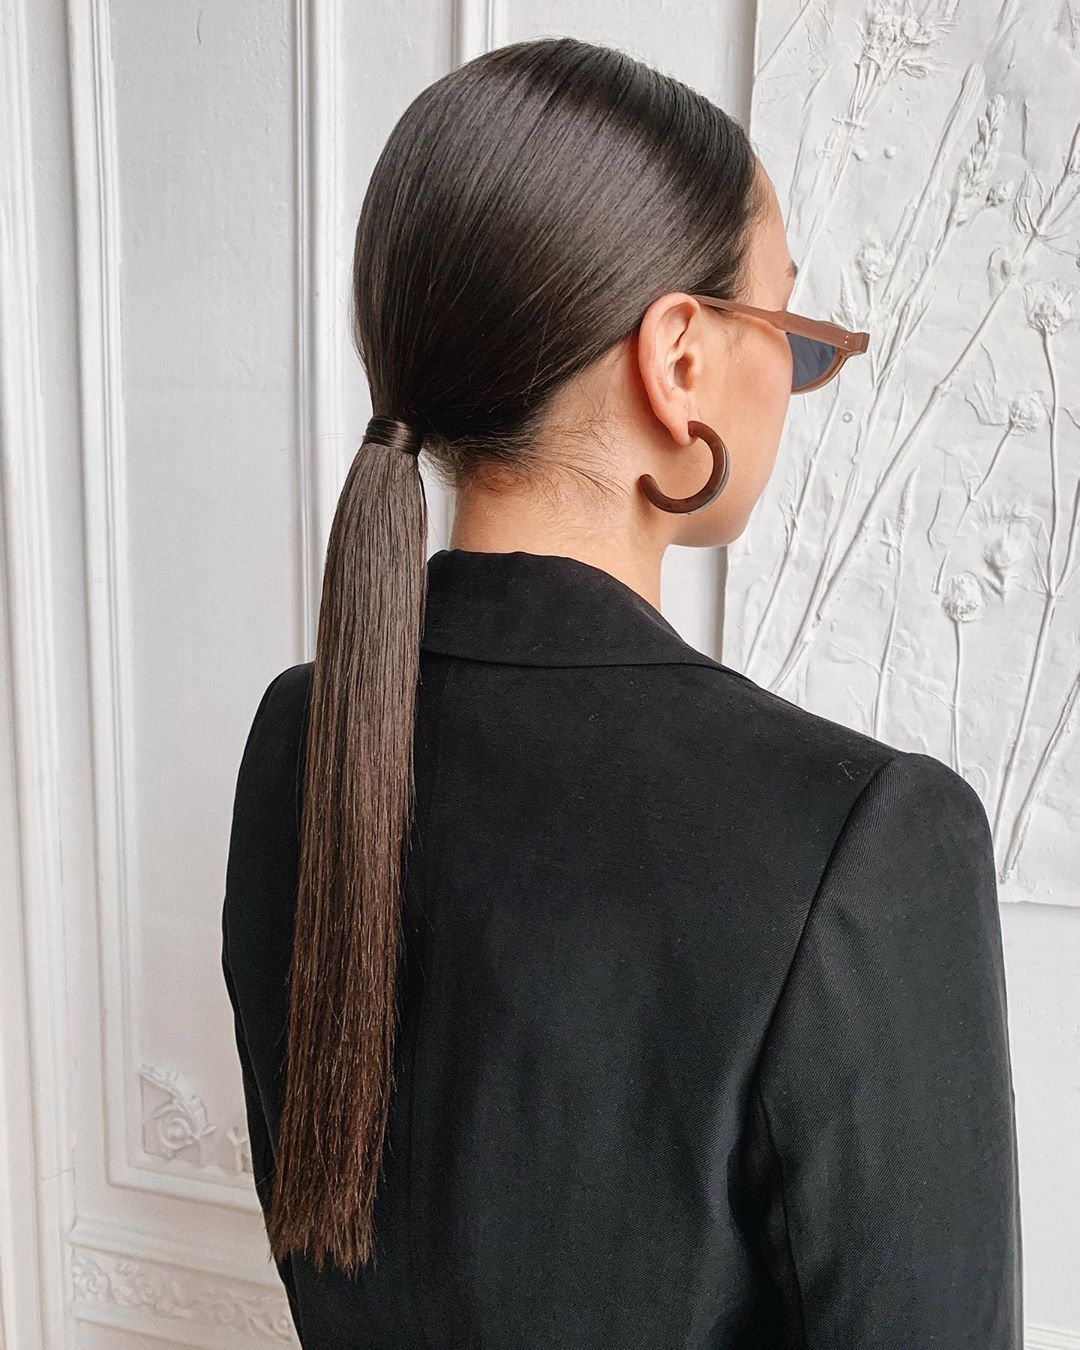 Autumn Minimalistic Sleek Low Pony for Straight Hair